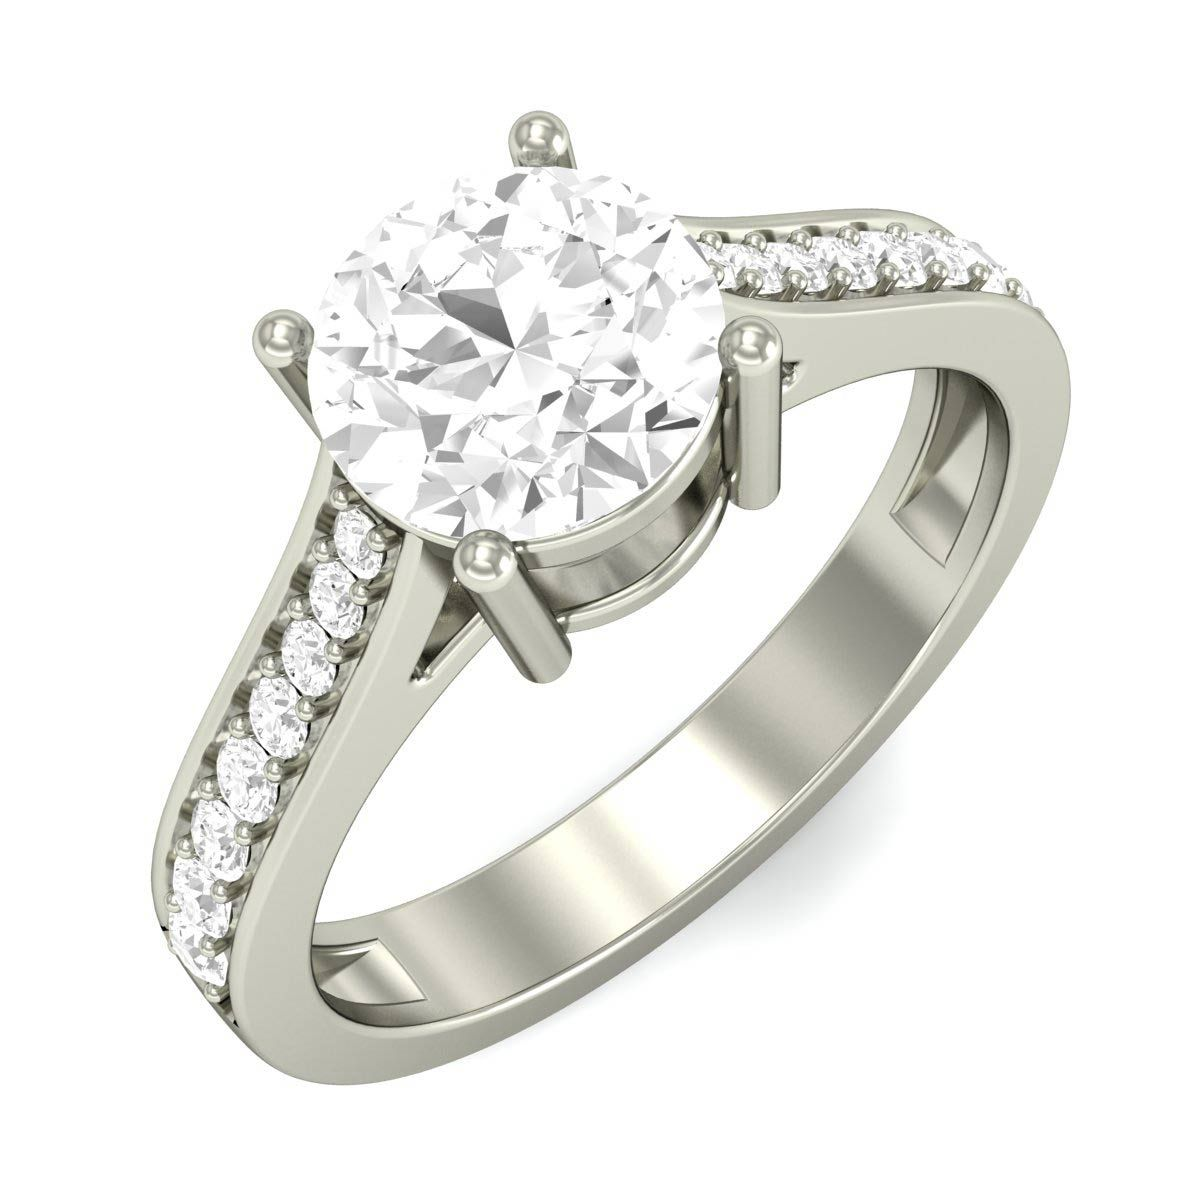 Pave Diamond Shank With Raised Prong Set Round Solitaire Ring Design your own Solitaire